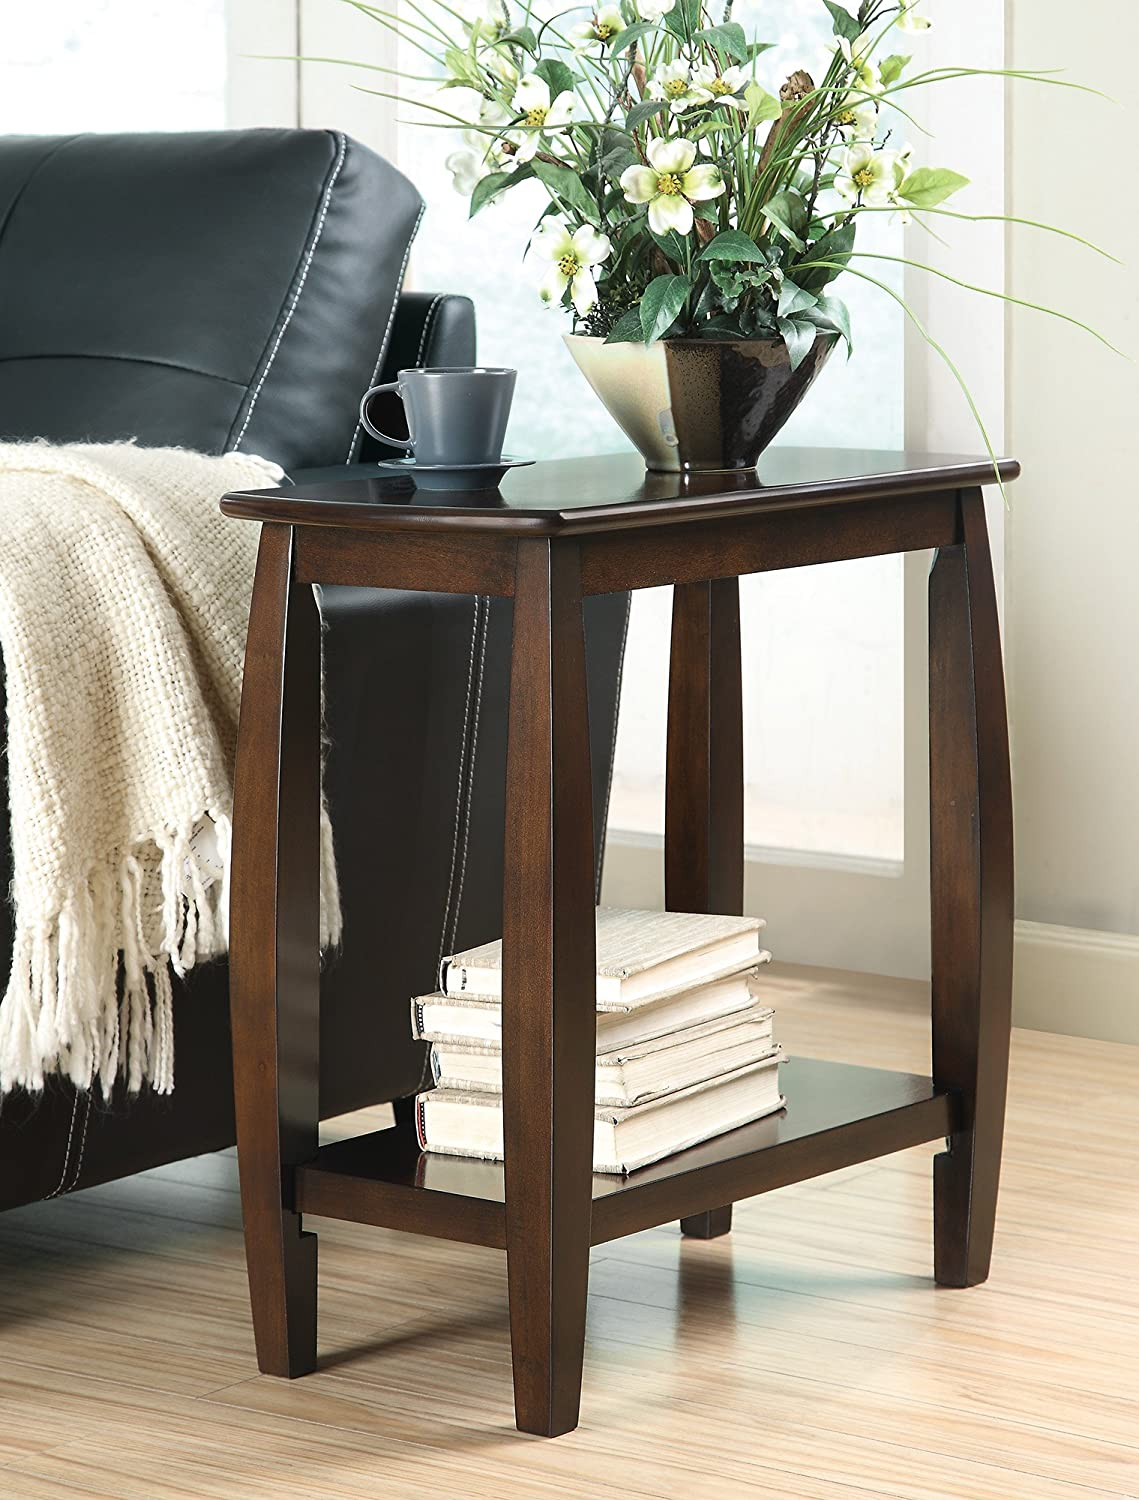 Benzara BM160096 End Table, One, Brown